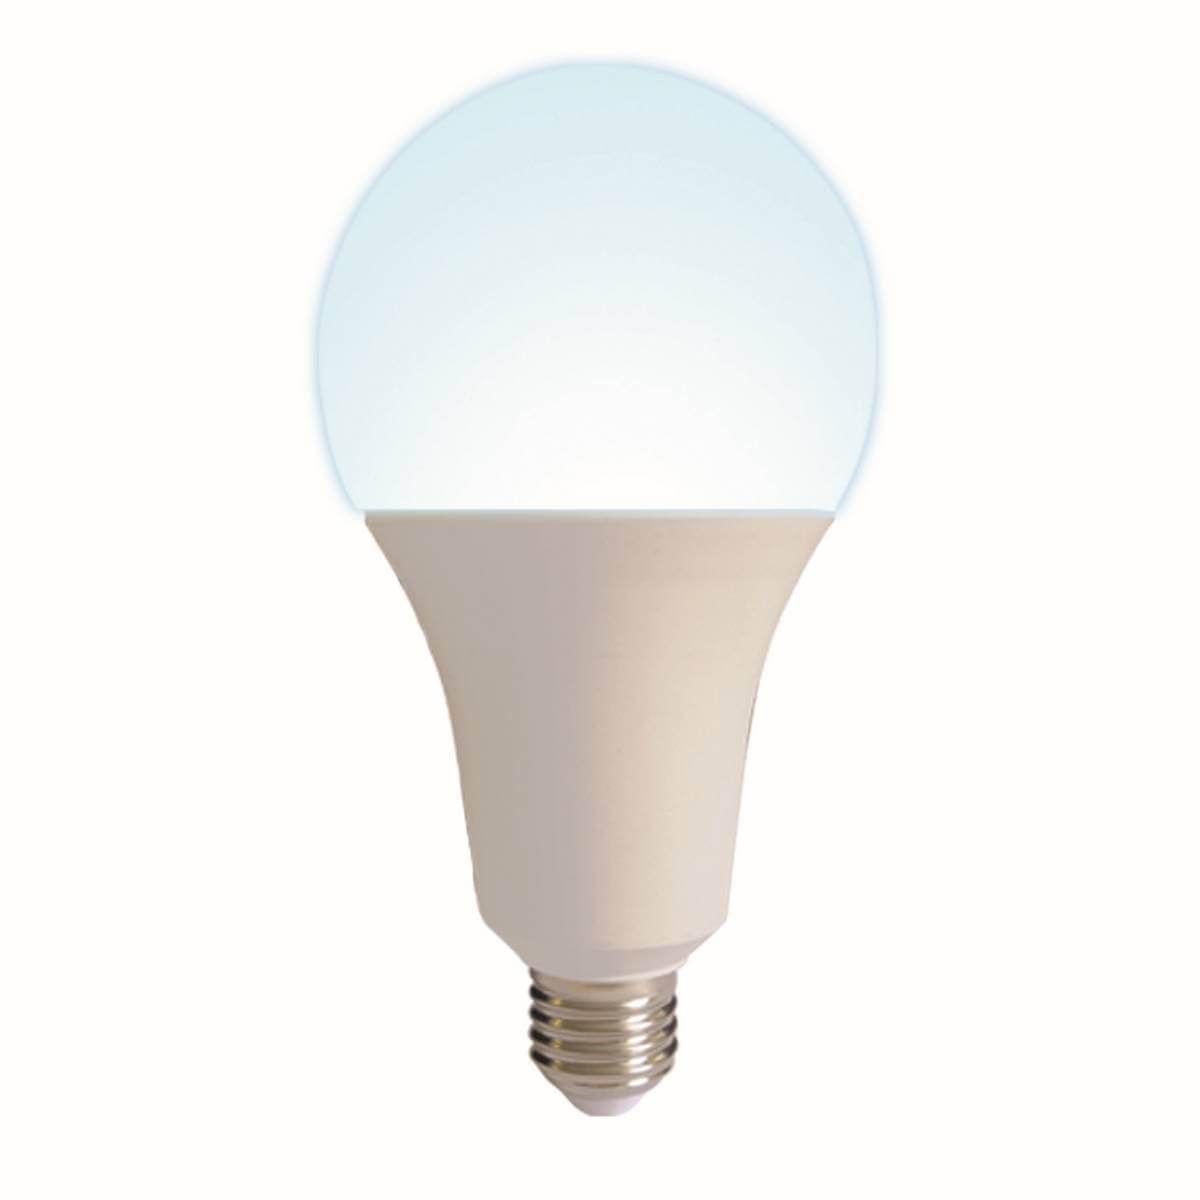 Лампочка Volpe LED-A95-30W/6500K/E27/FR/NR Norma